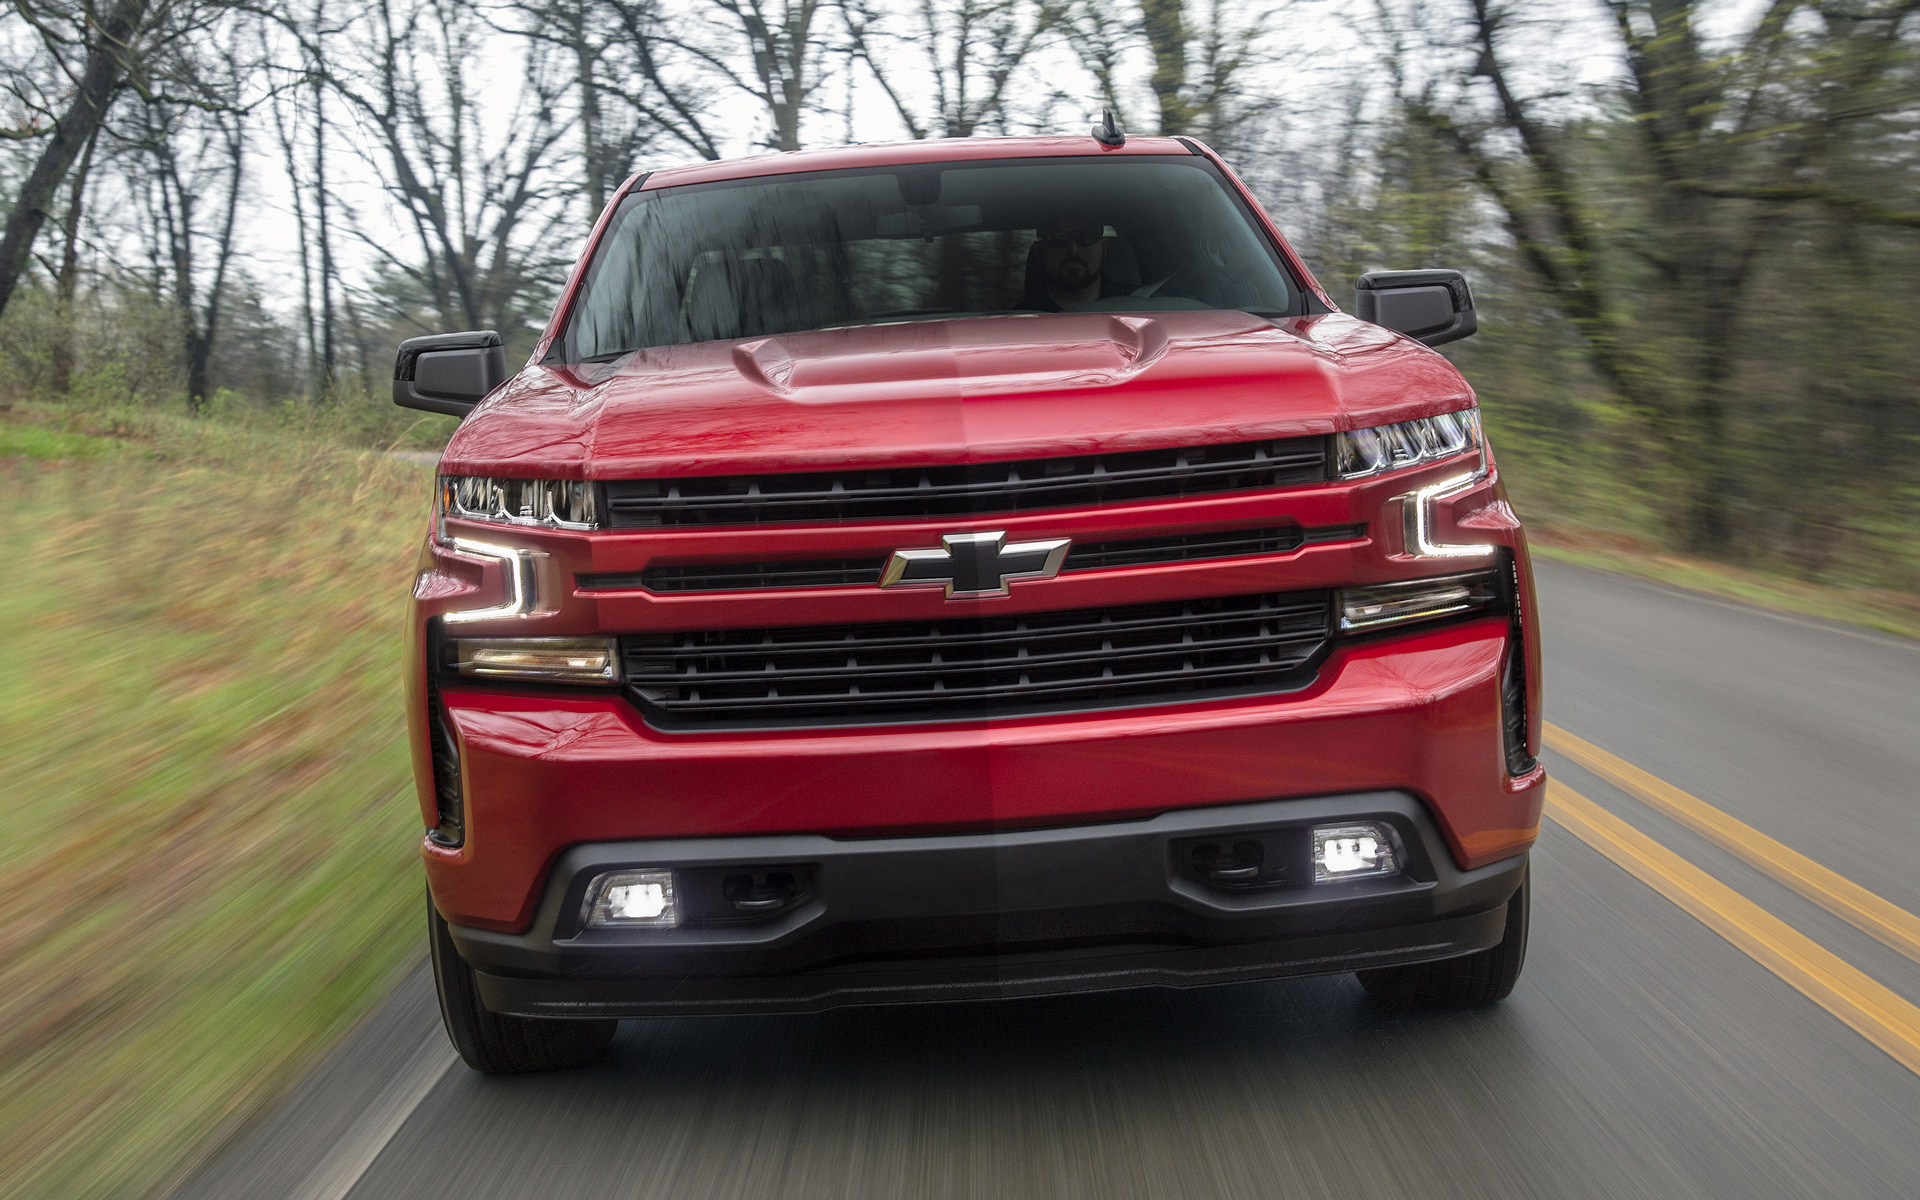 2019 Chevrolet Silverado Rst Crew Cab Wallpapers And Hd